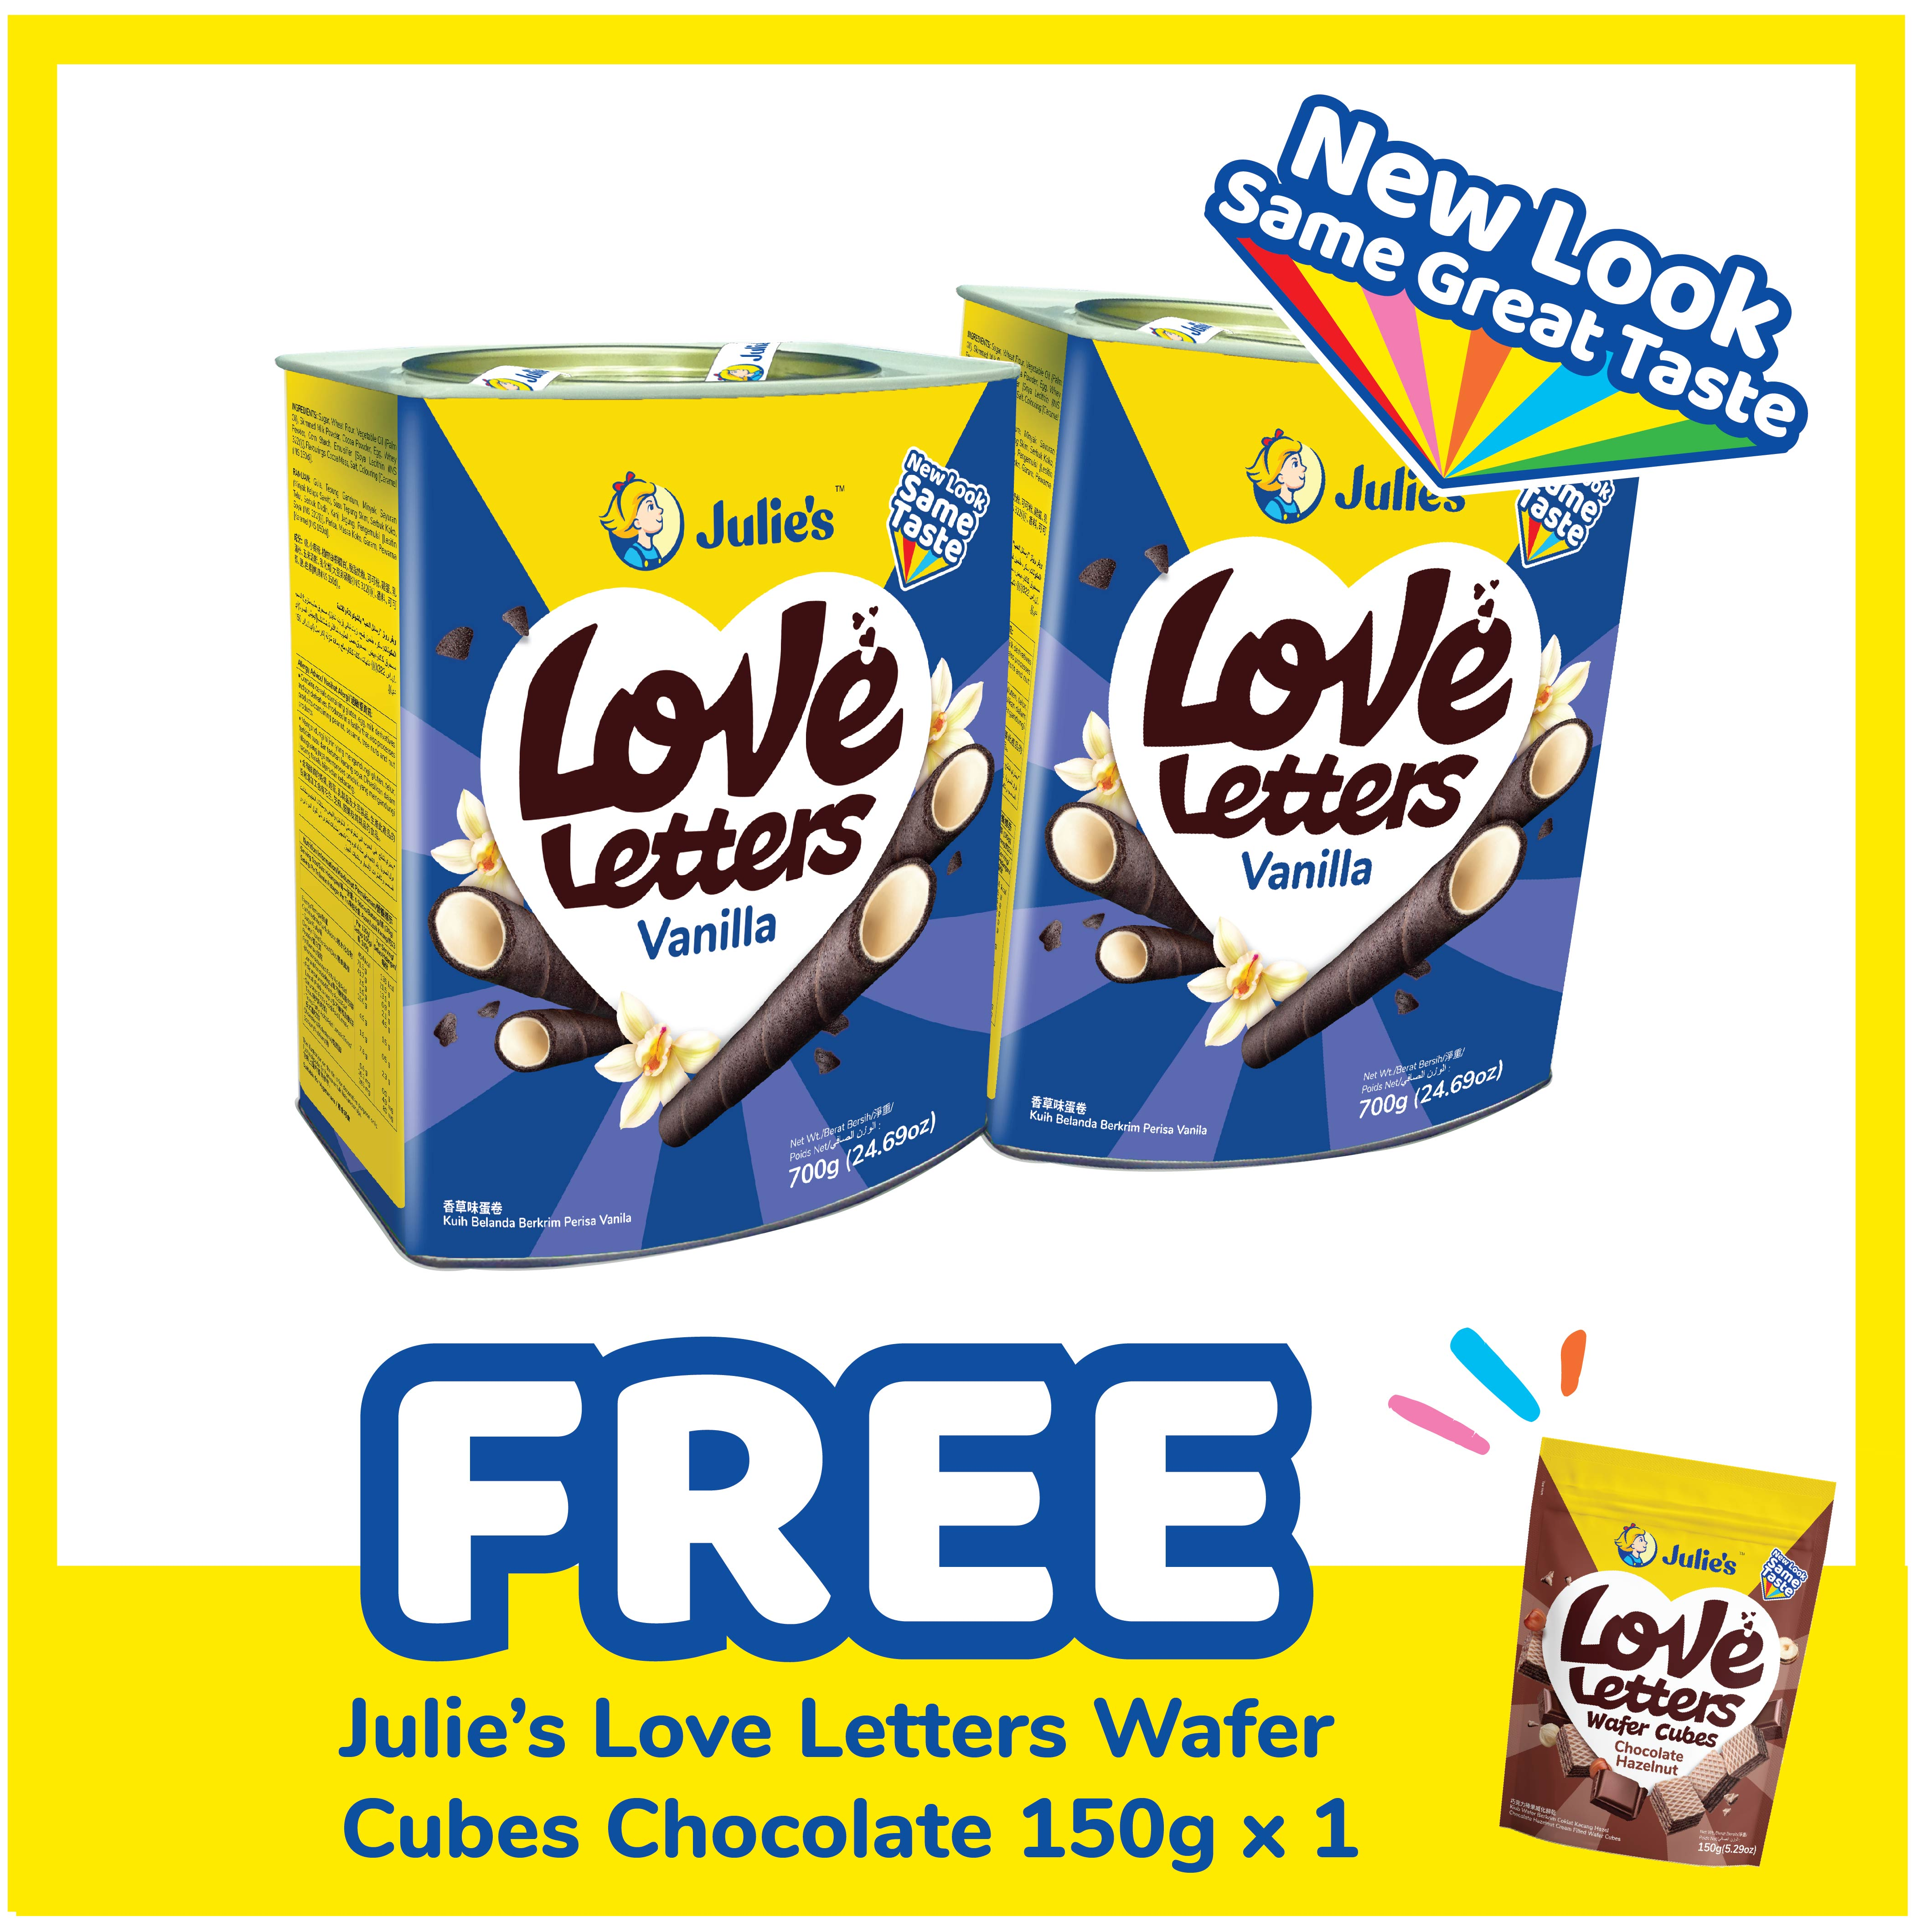 Julie's Love Letters Vanilla 700g x 2 tins [Inner Pack Online Exclusive] + Free Julie's Love Letter Wafer Cube Chocolate 150g x 1 pack [ CNY Promotion Packaging ]